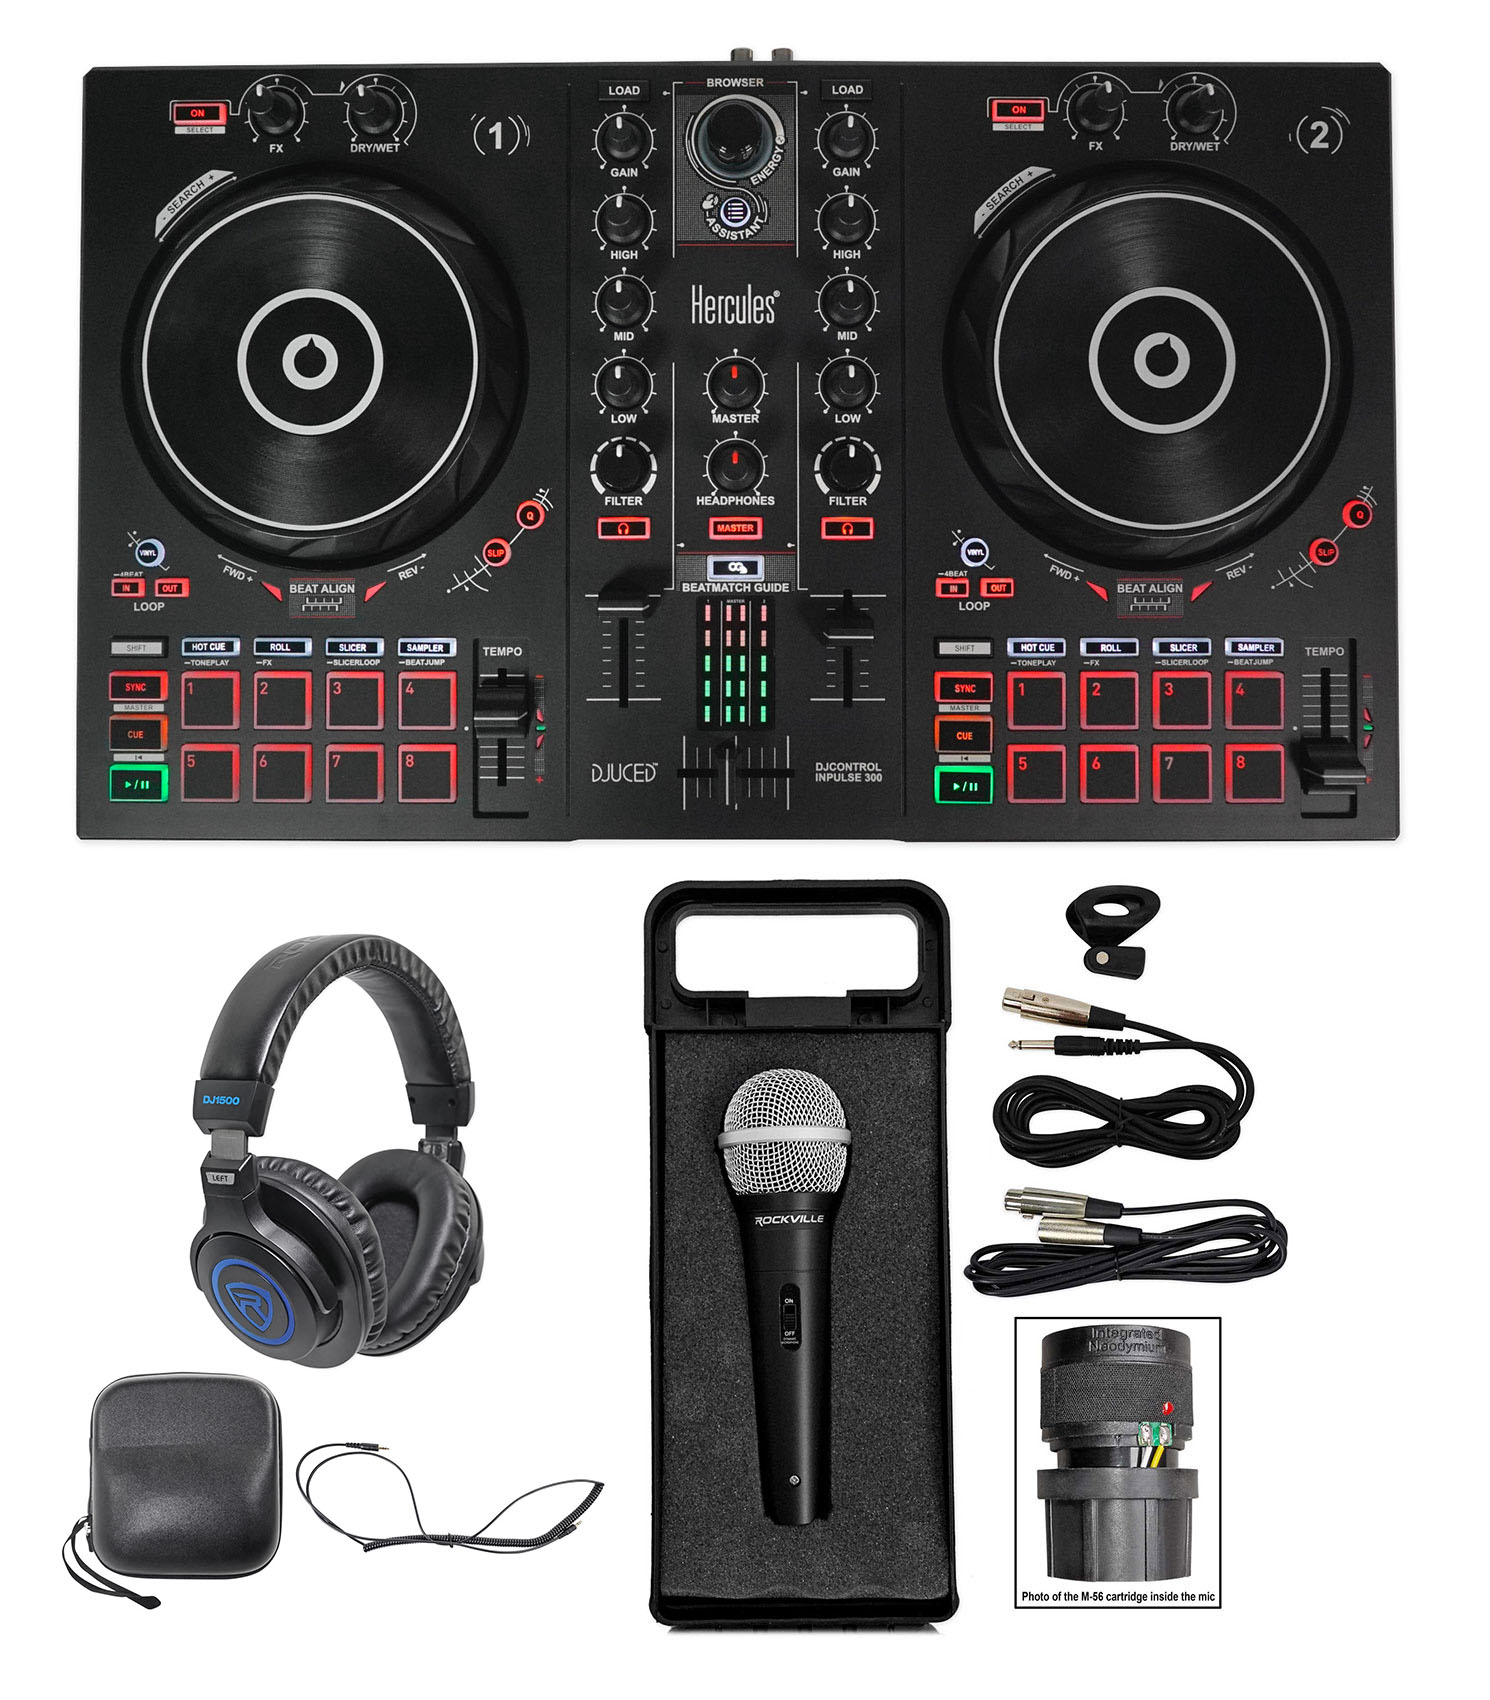 Stereo Cable Hercules DJ Control Inpulse 300 Professional Headphones Cleaning Cloth